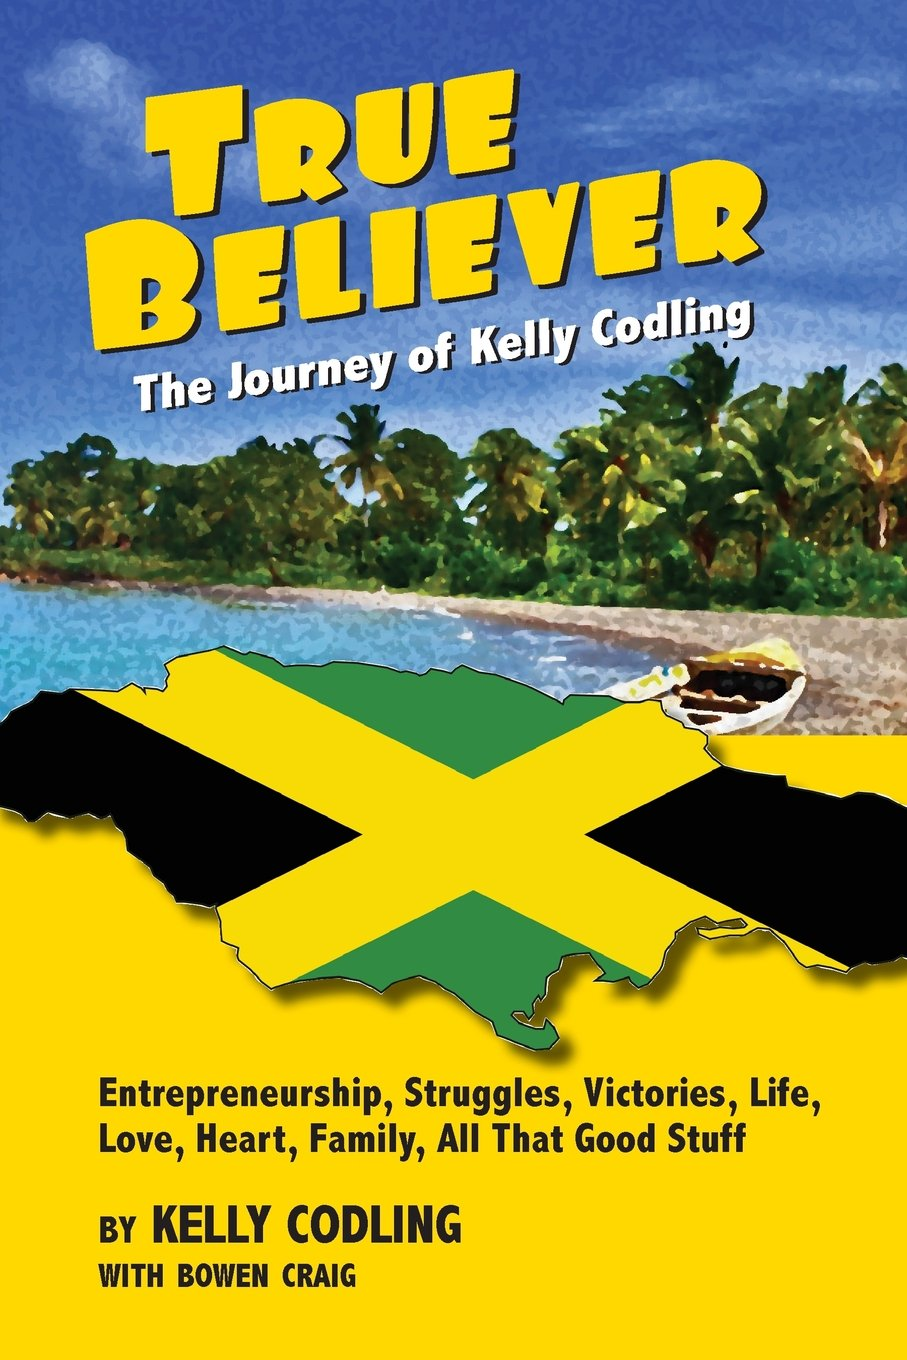 front cover of book true believer